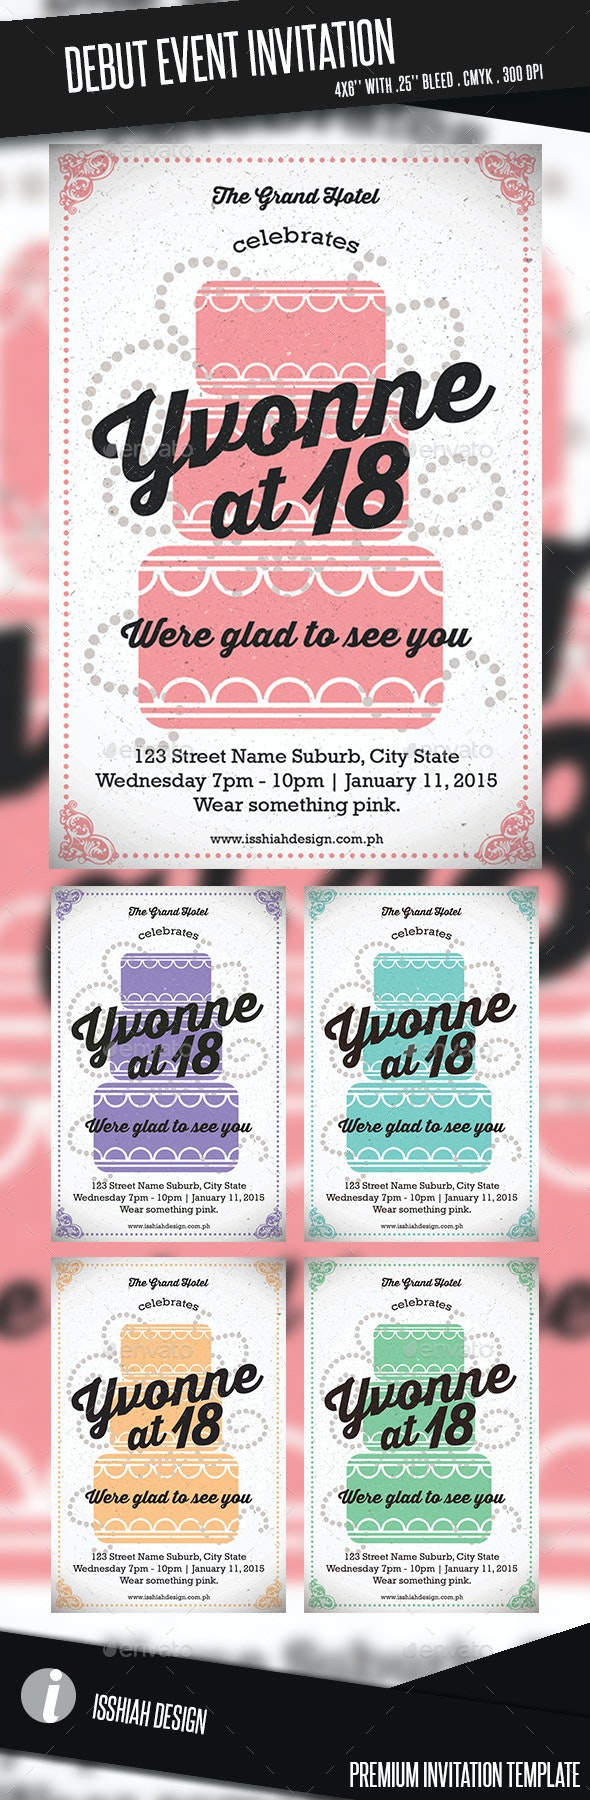 Debut Event Invitation - Birthday Greeting Cards